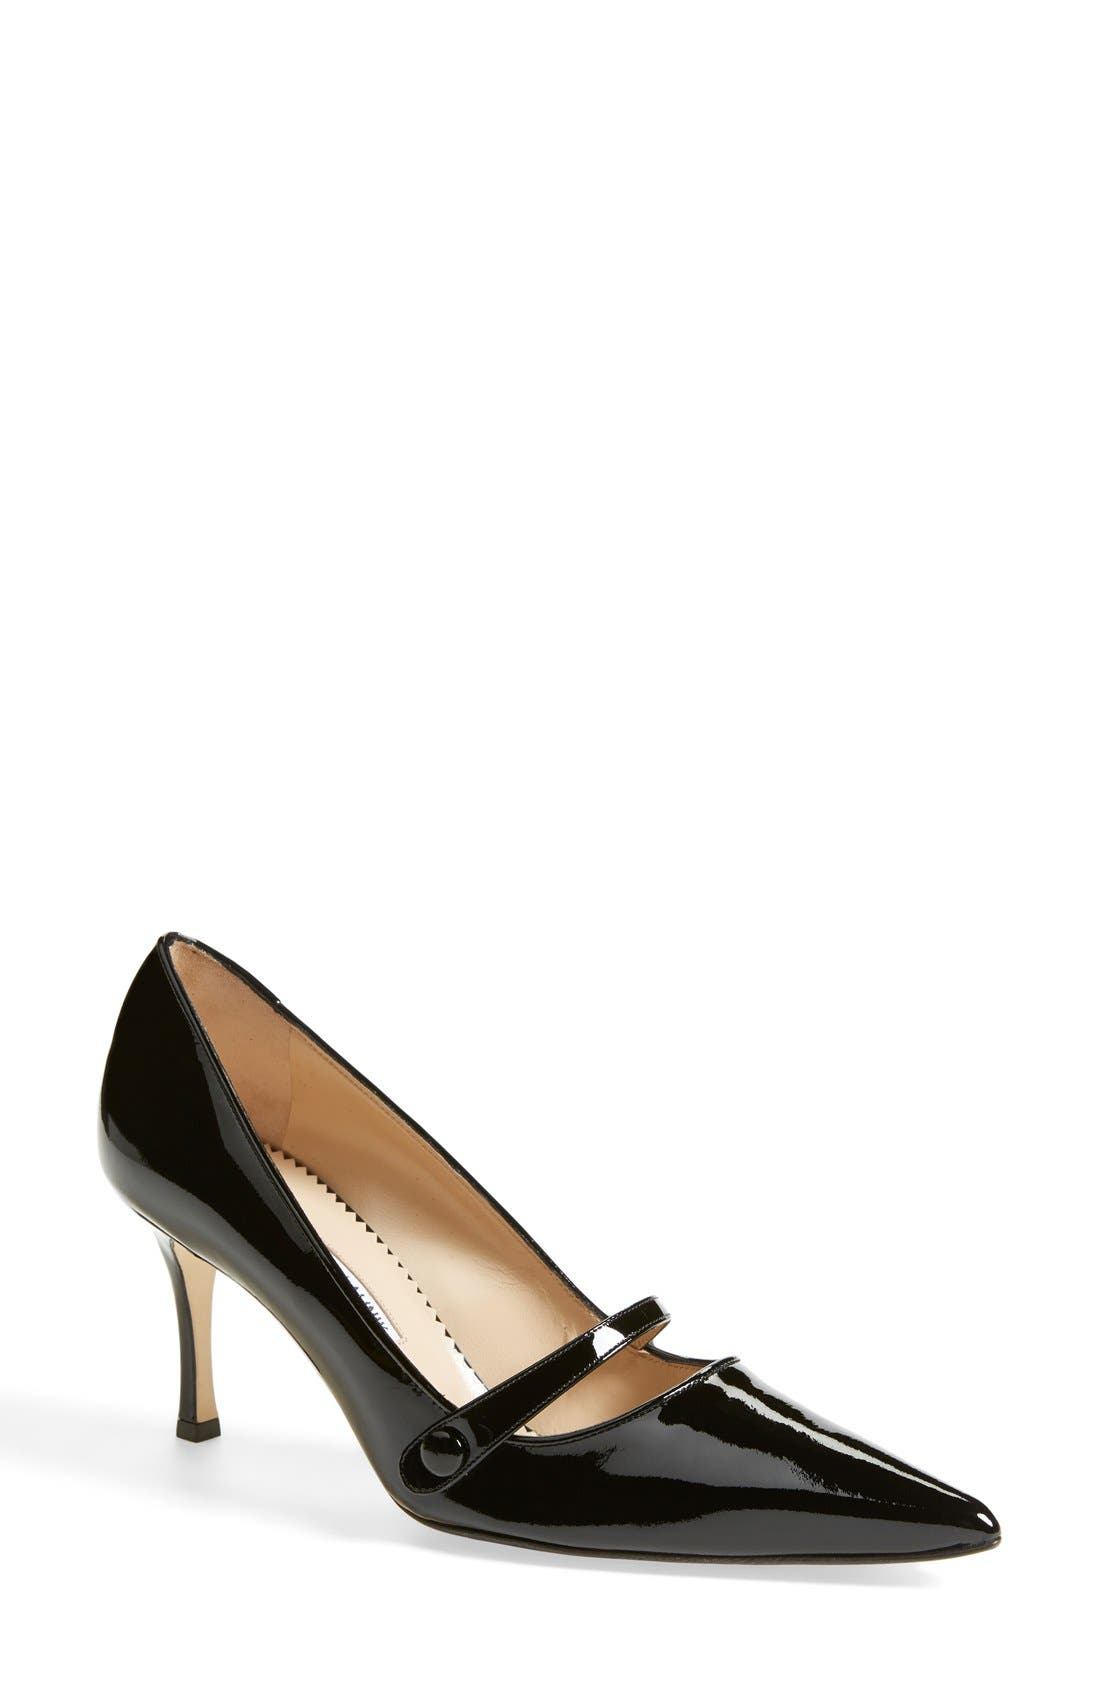 Main Image - Manolo Blahnik 'Mladari' Mary Jane Pump (Women)